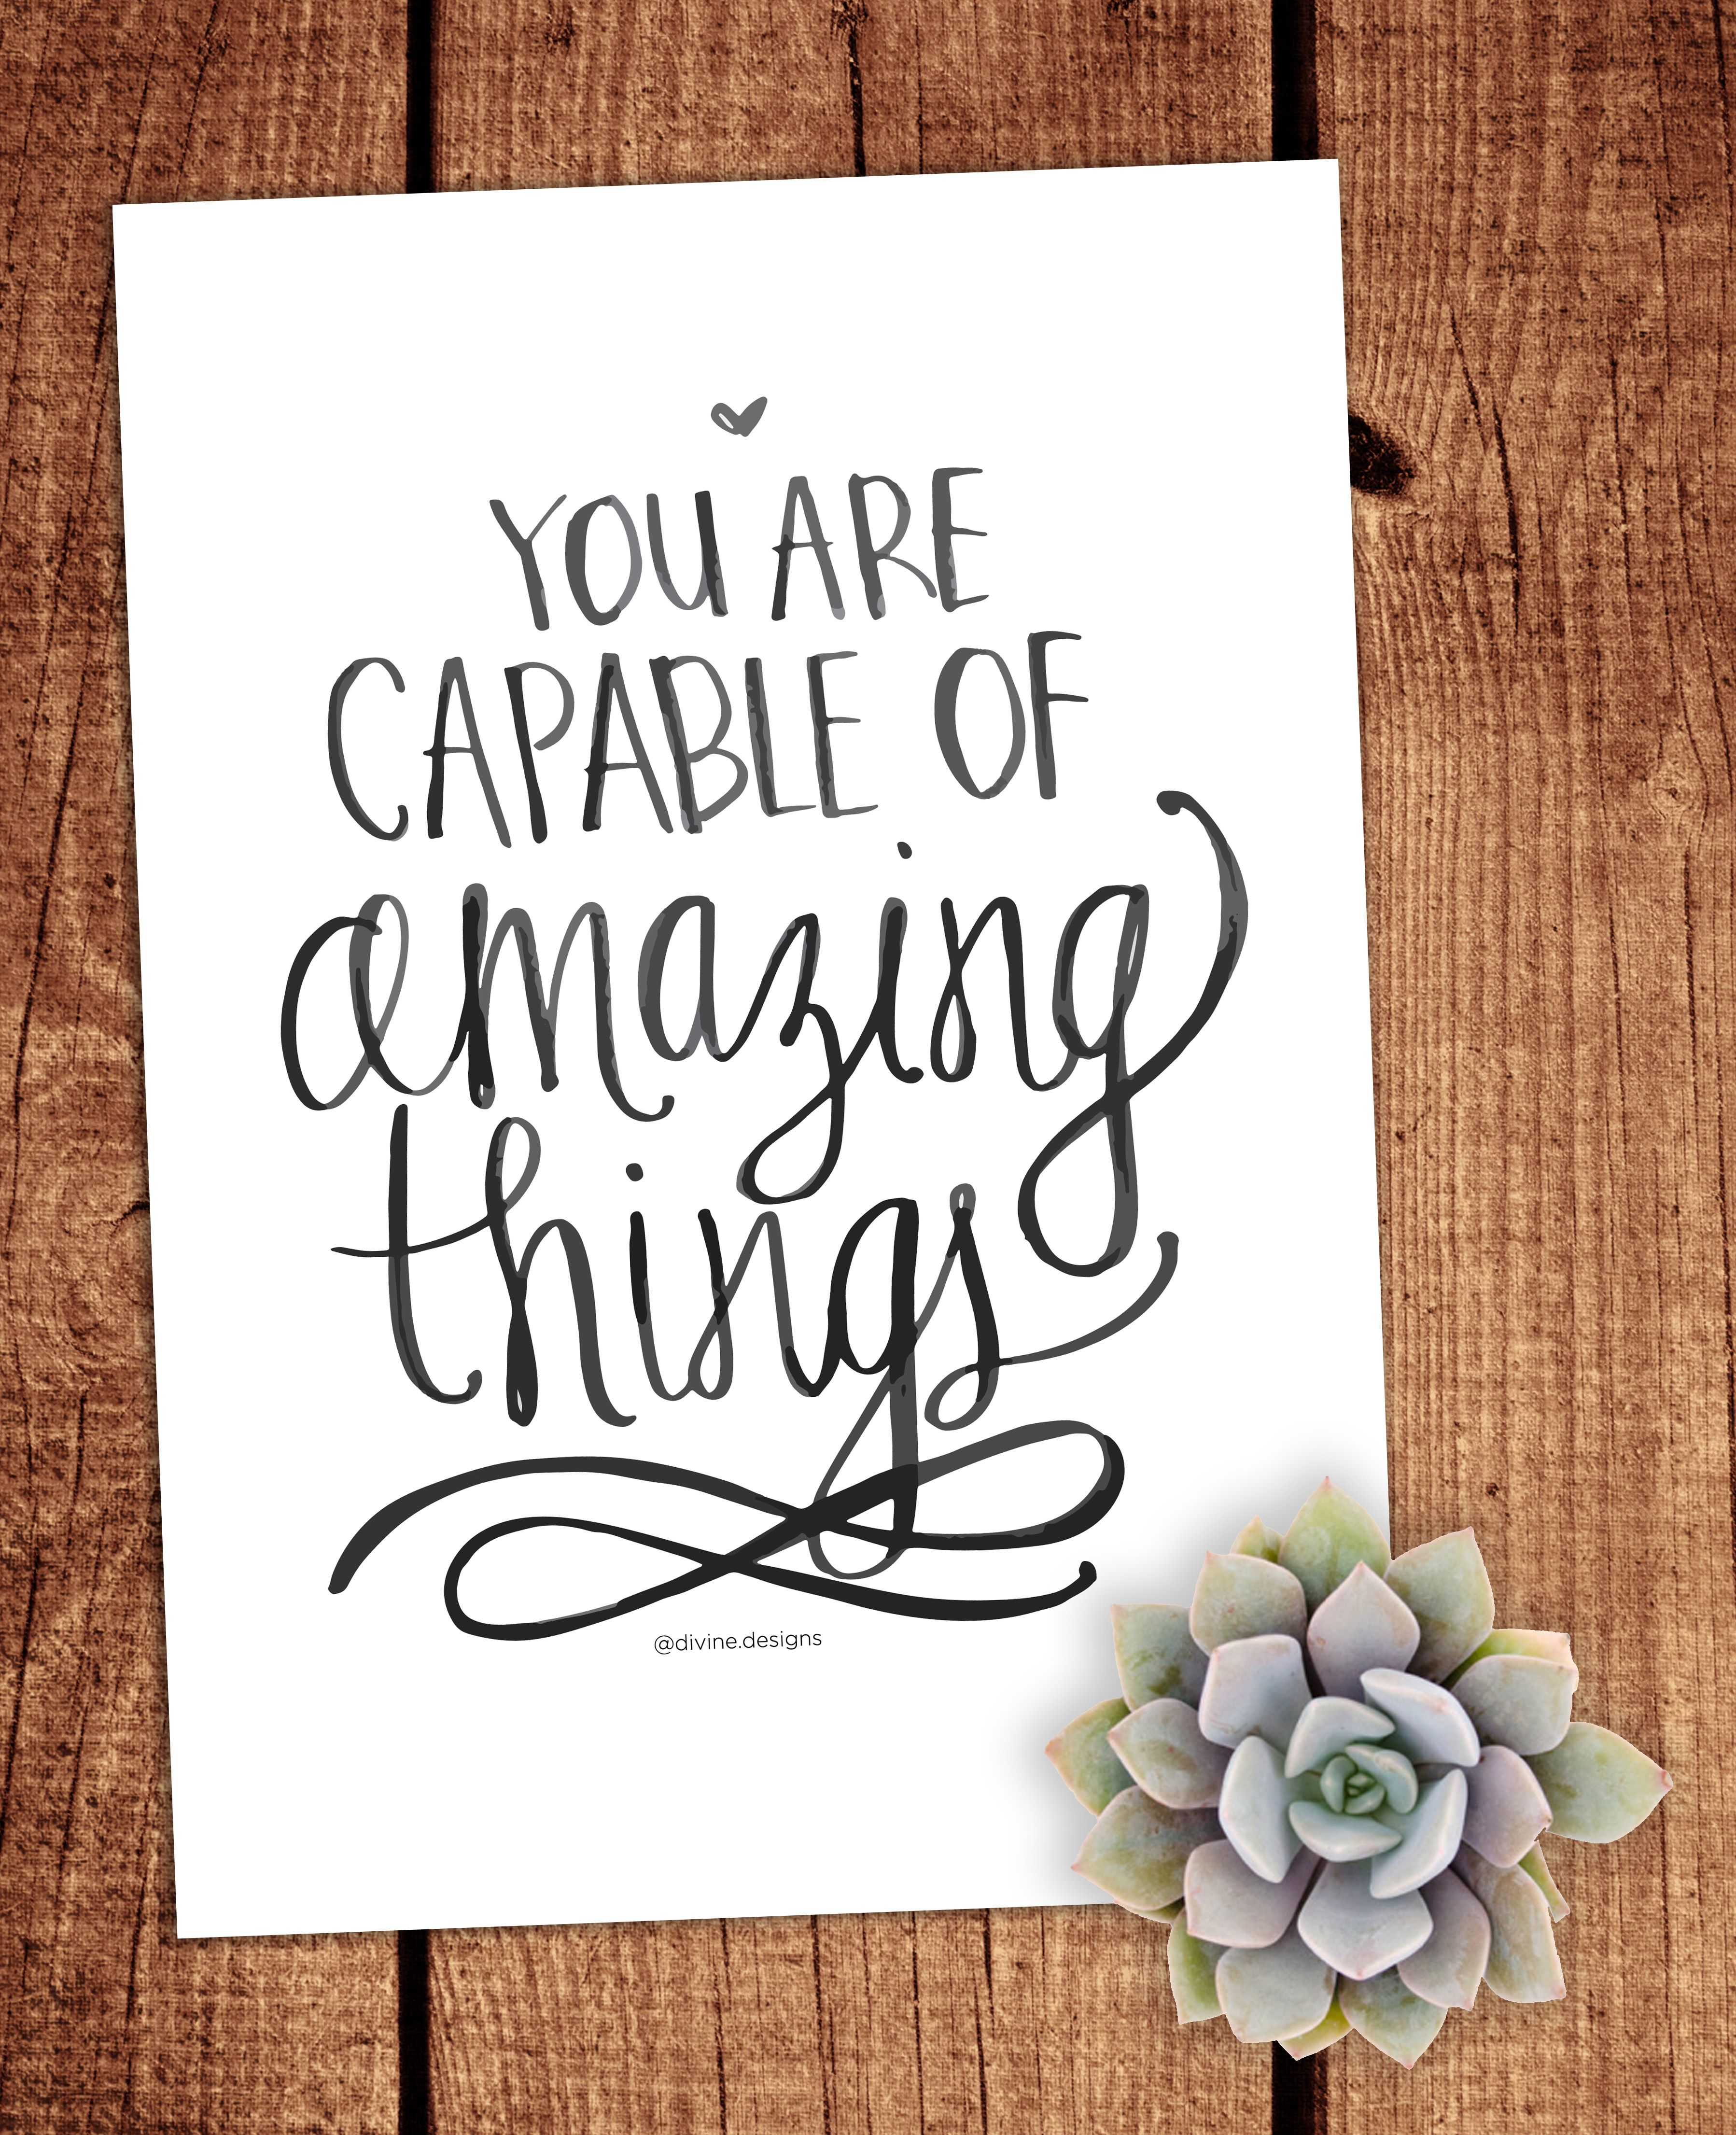 Amazing Life Quotes For Inspiration Free Printable Cards: You Are Capable Of AMAZING Things.